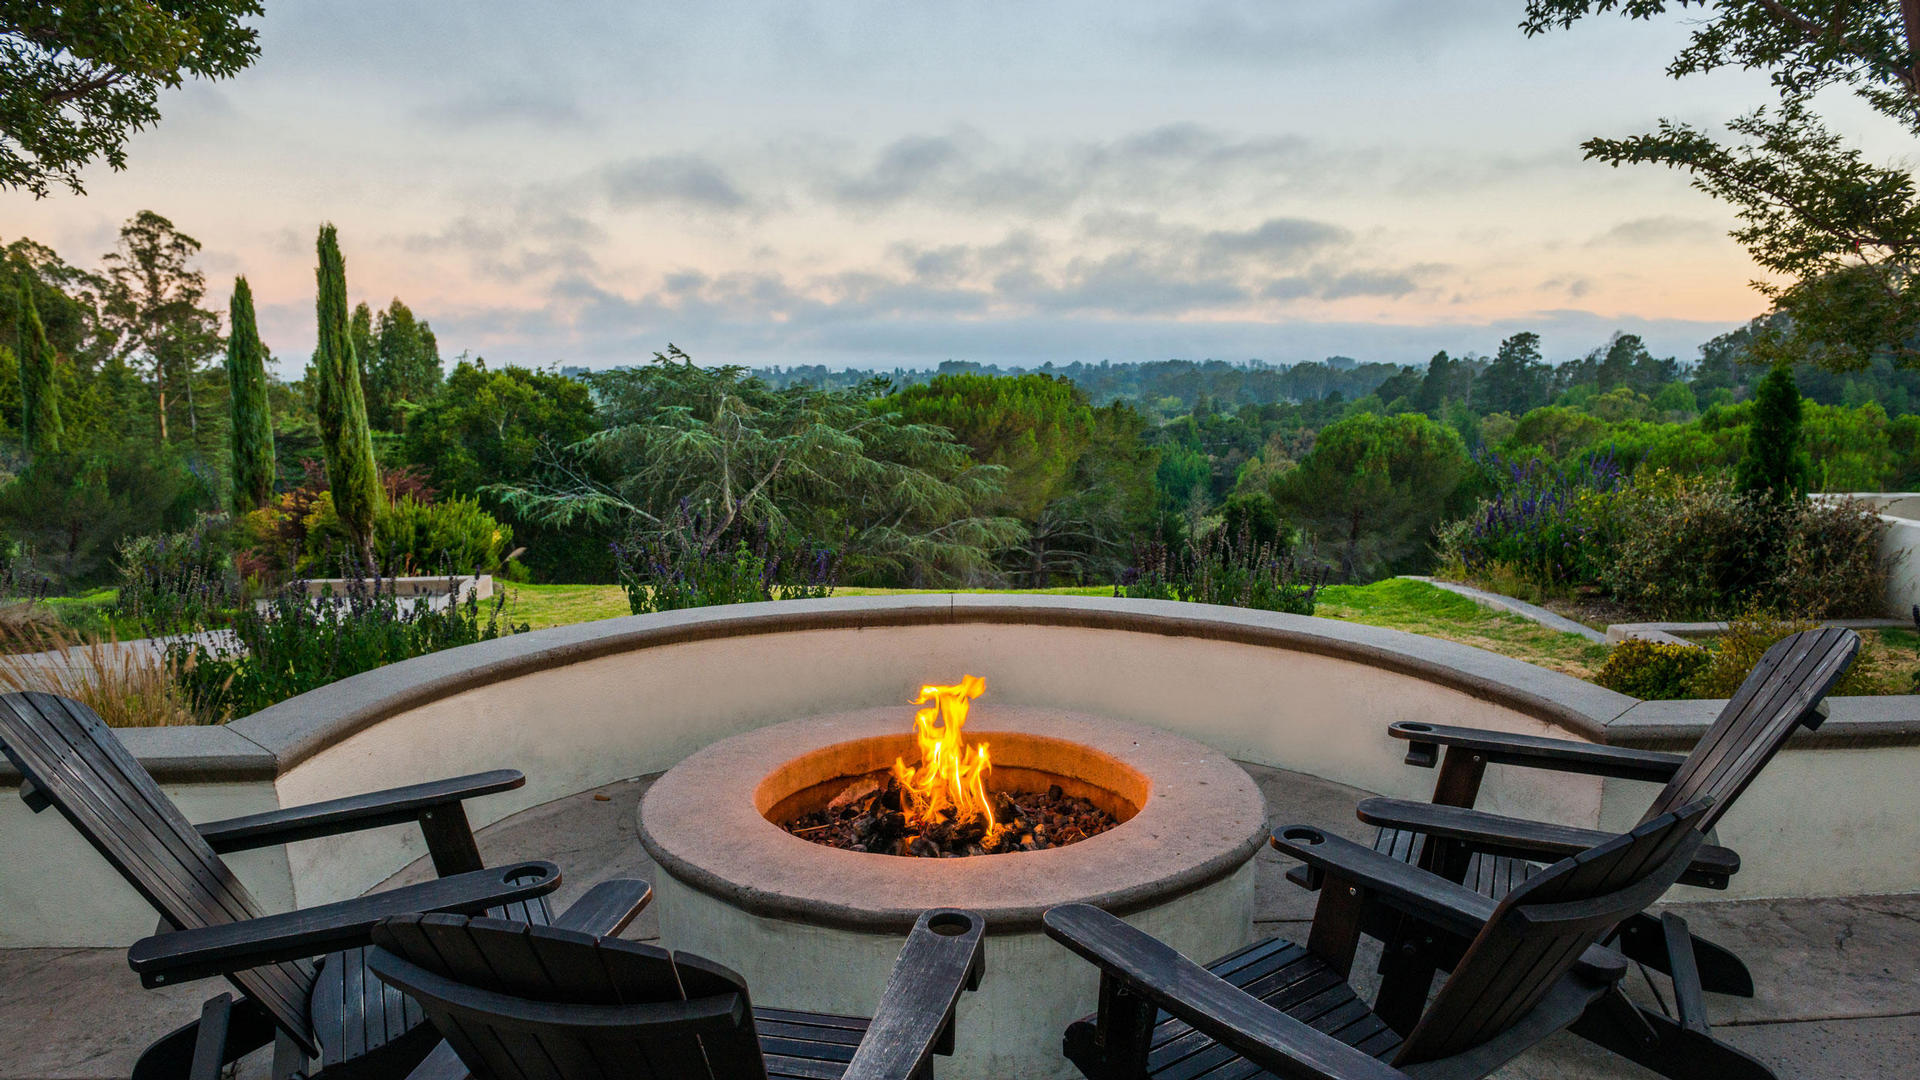 Fire Pit at Chaminade Resort & Spa in Santa Cruz, CA